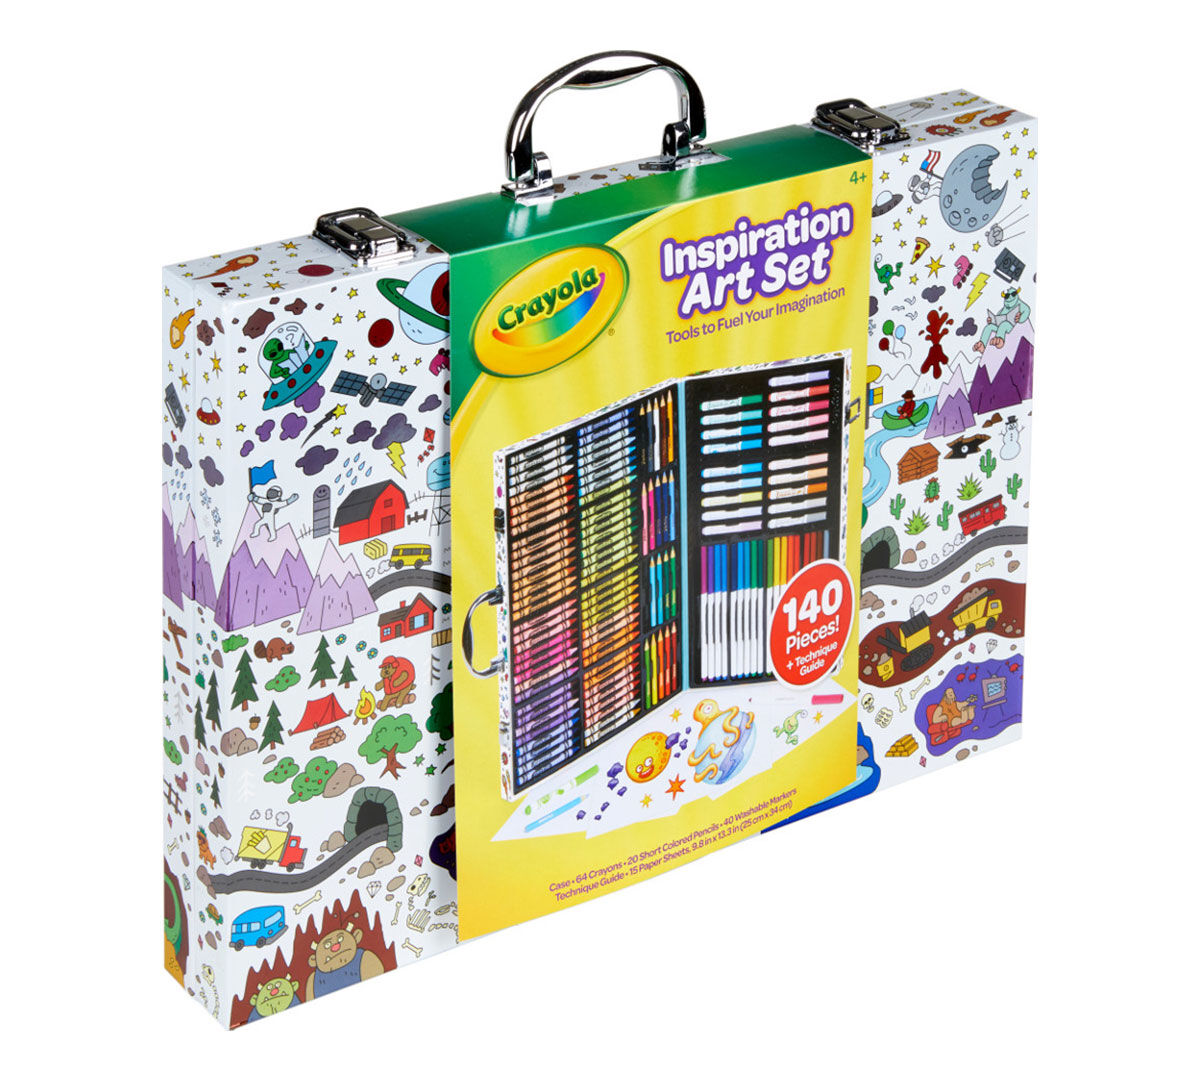 Easter Gifts for Kids 4,5,6 Crayola Inspiration Art Case 140 Pieces Art Set